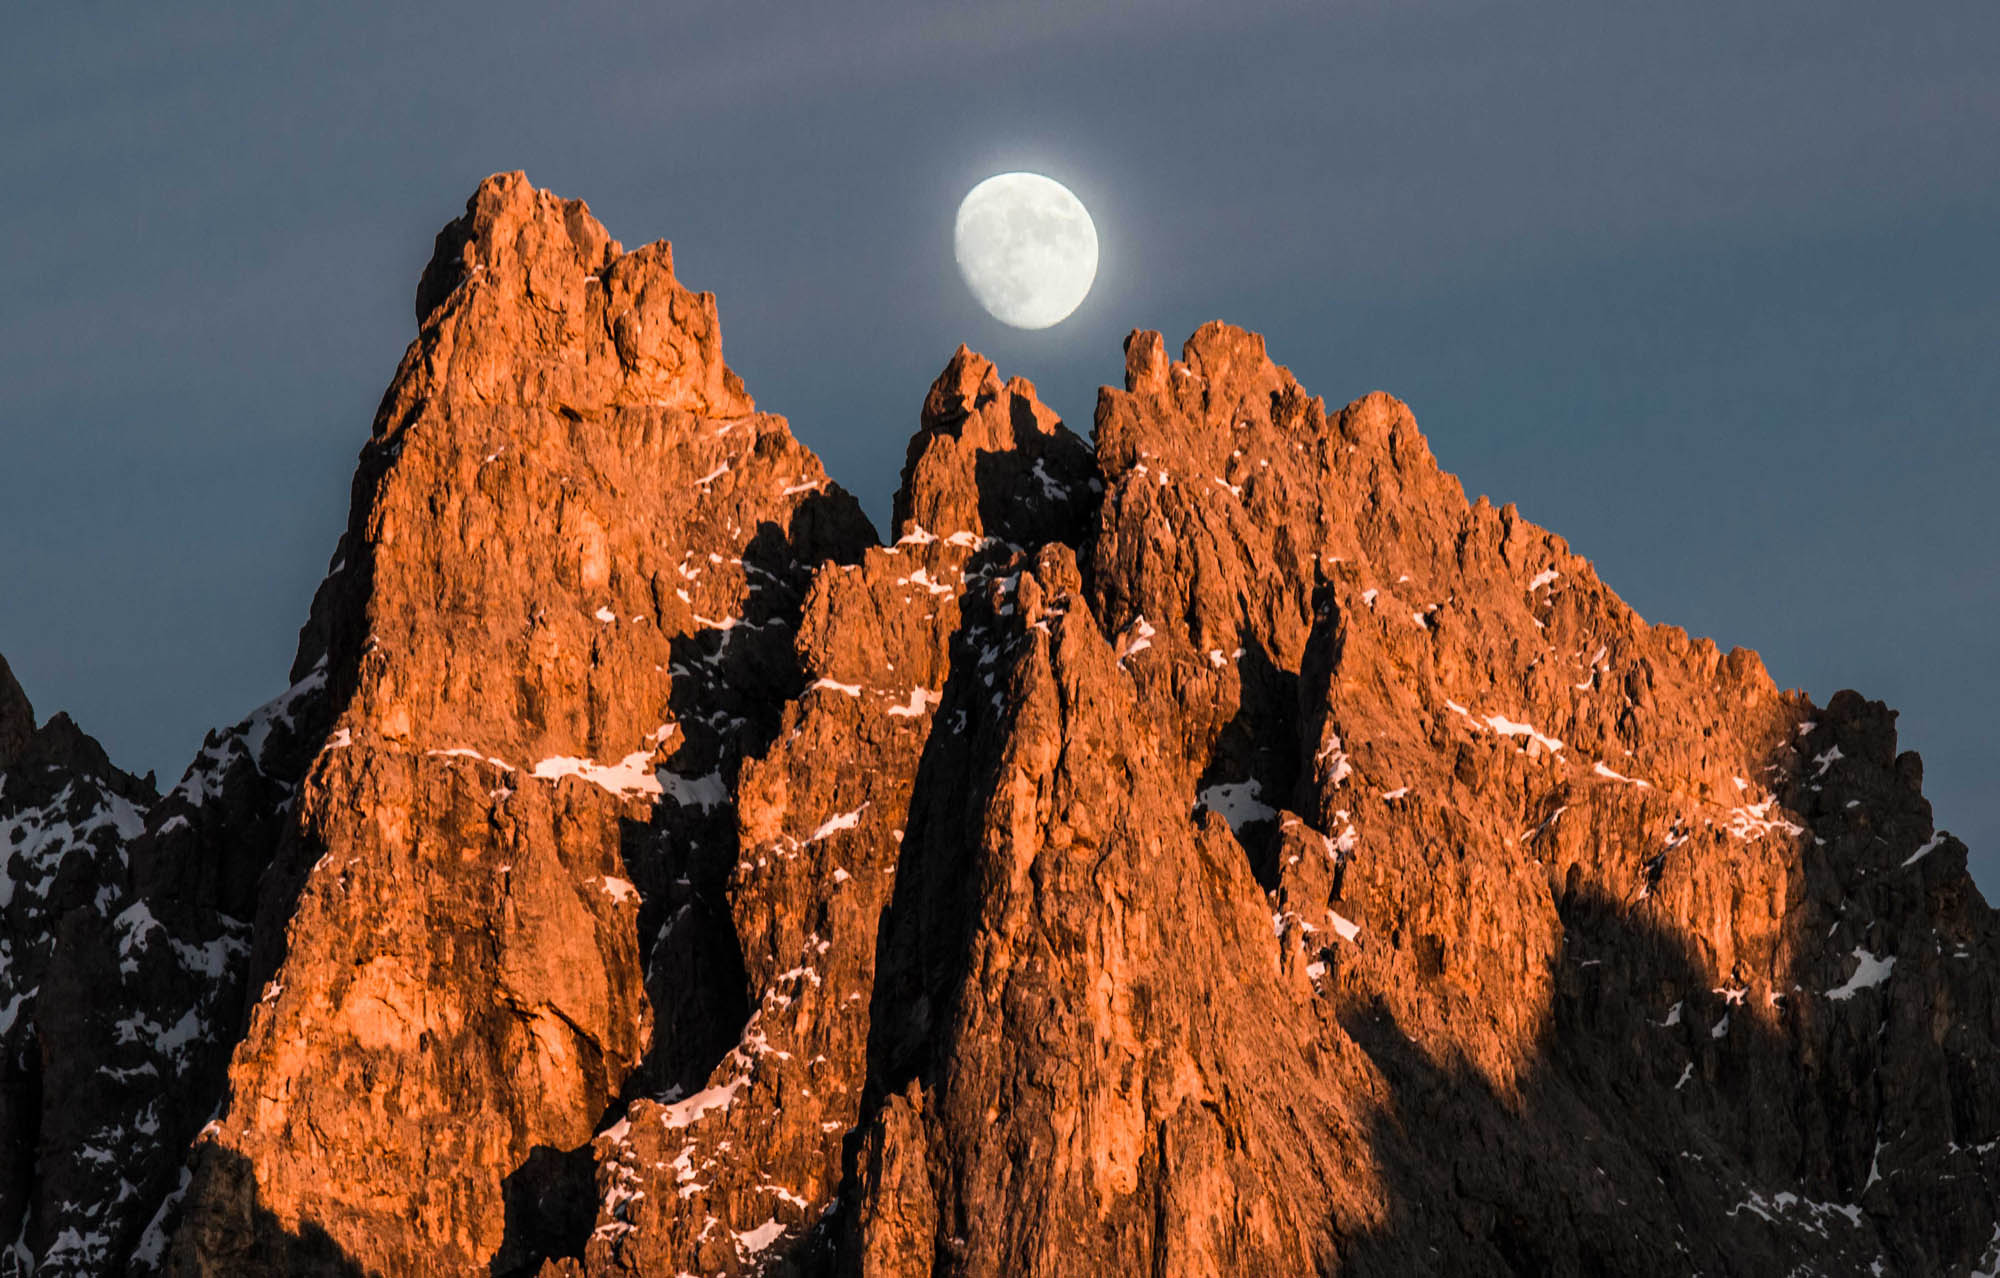 The moon raises above Pale di San Martino